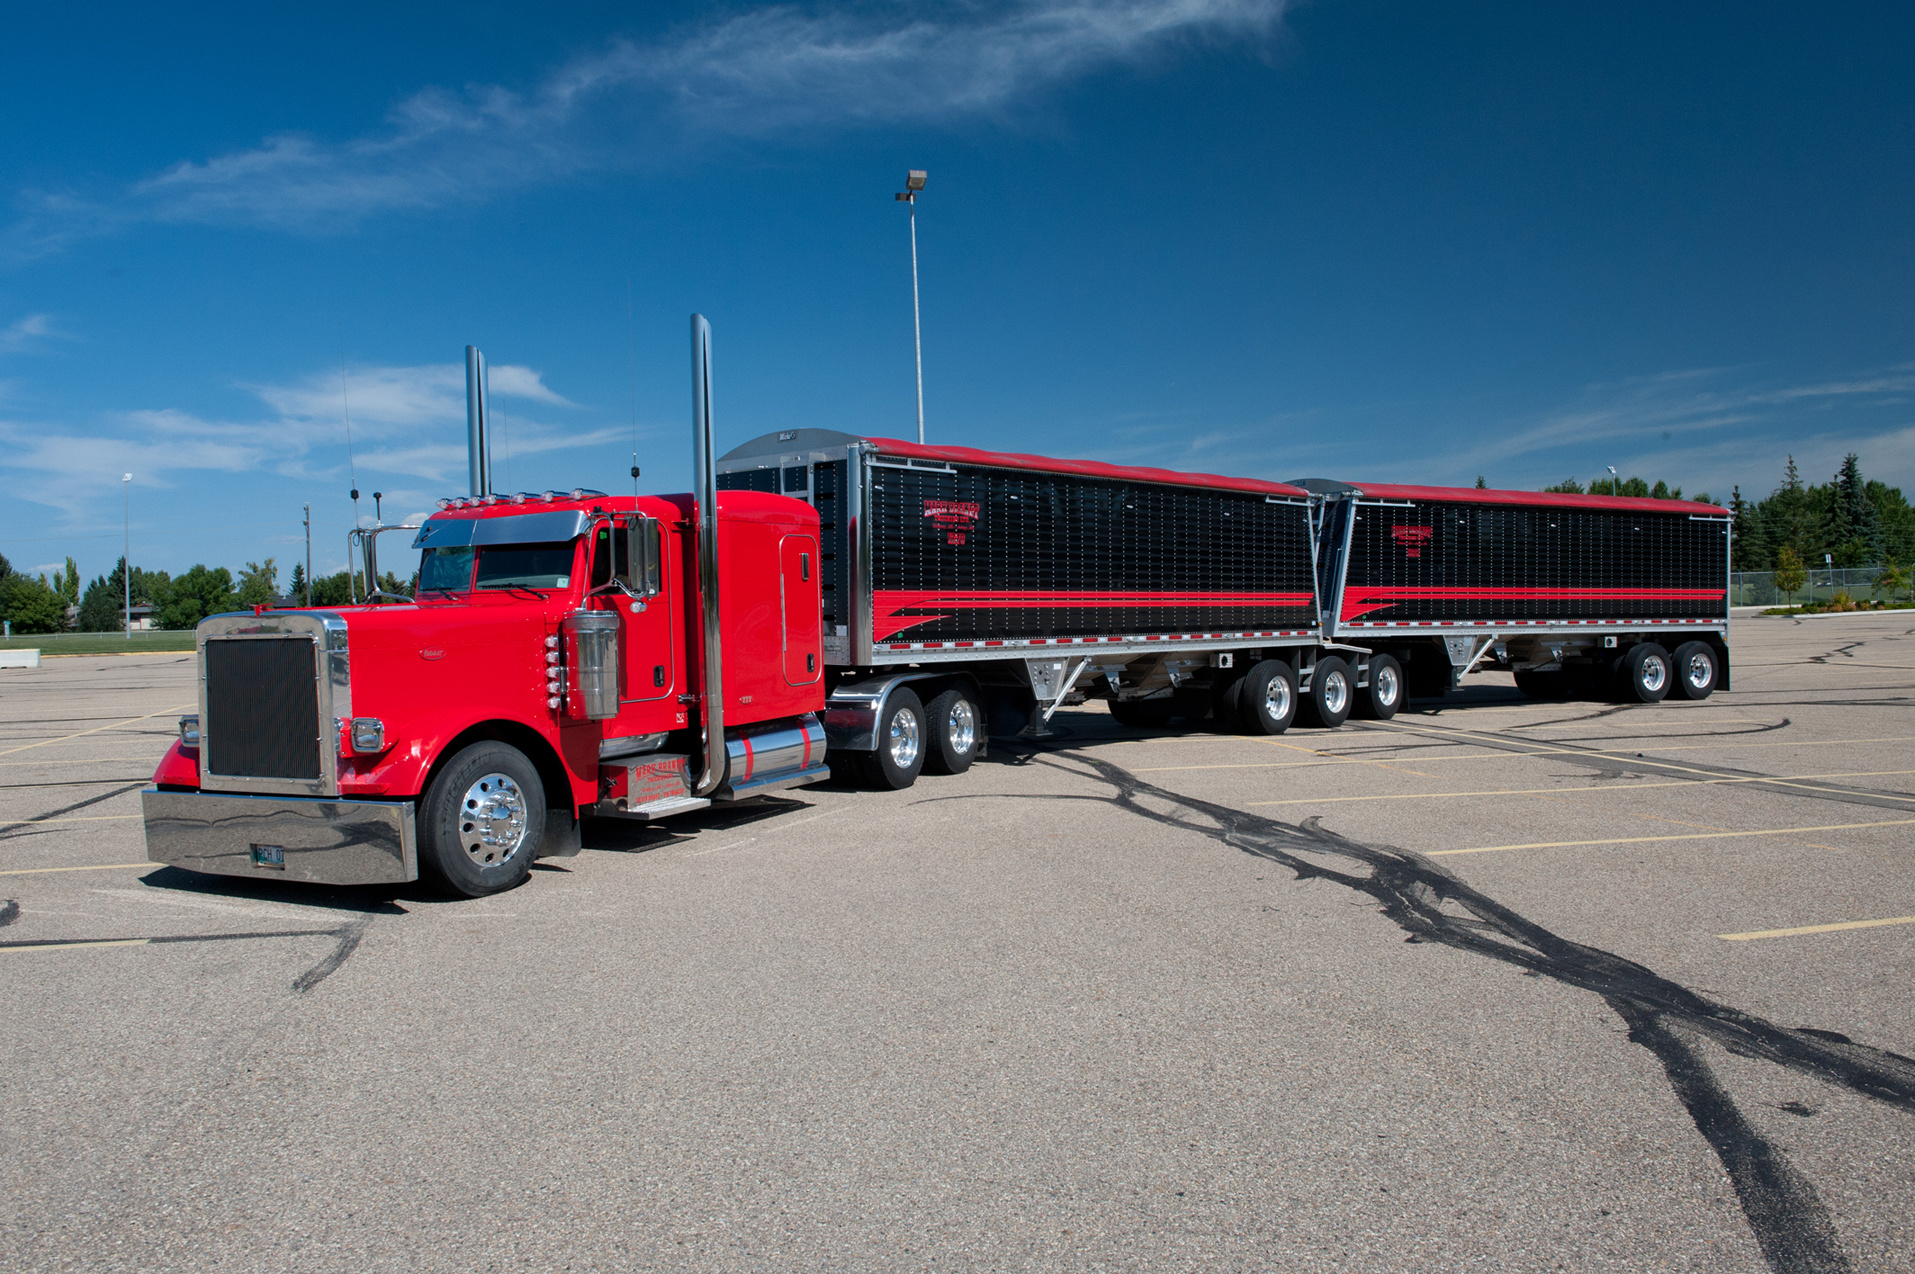 Images of Big Rig Wallpapers And Backgrounds - #SC